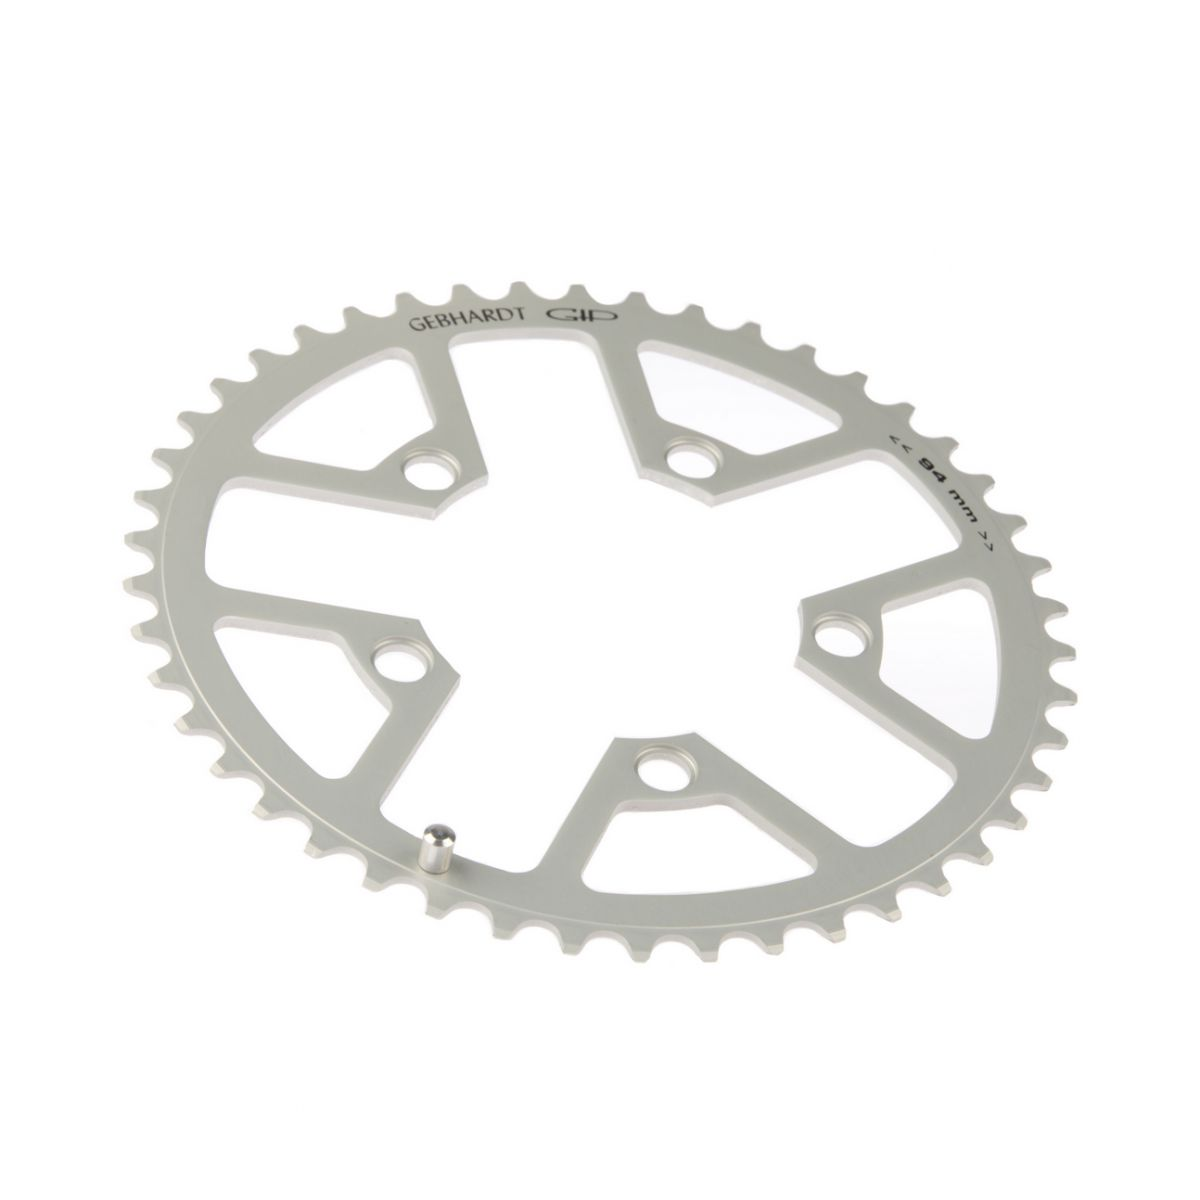 gebhardt chainring classic bcd 94 mm 5hole 39t silver